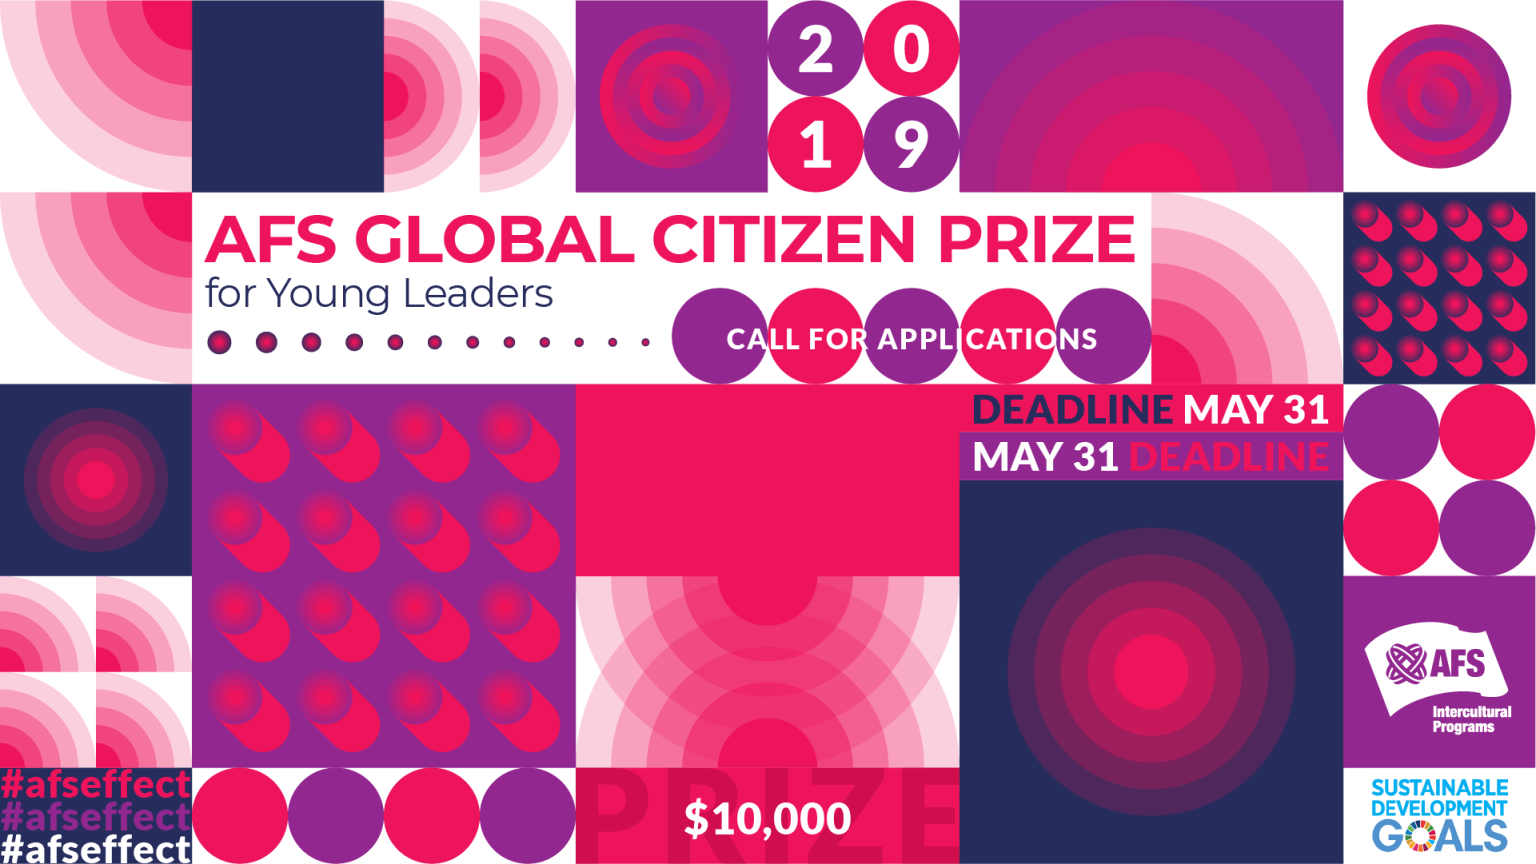 2019 AFS Global Citizen Award for Young Leaders